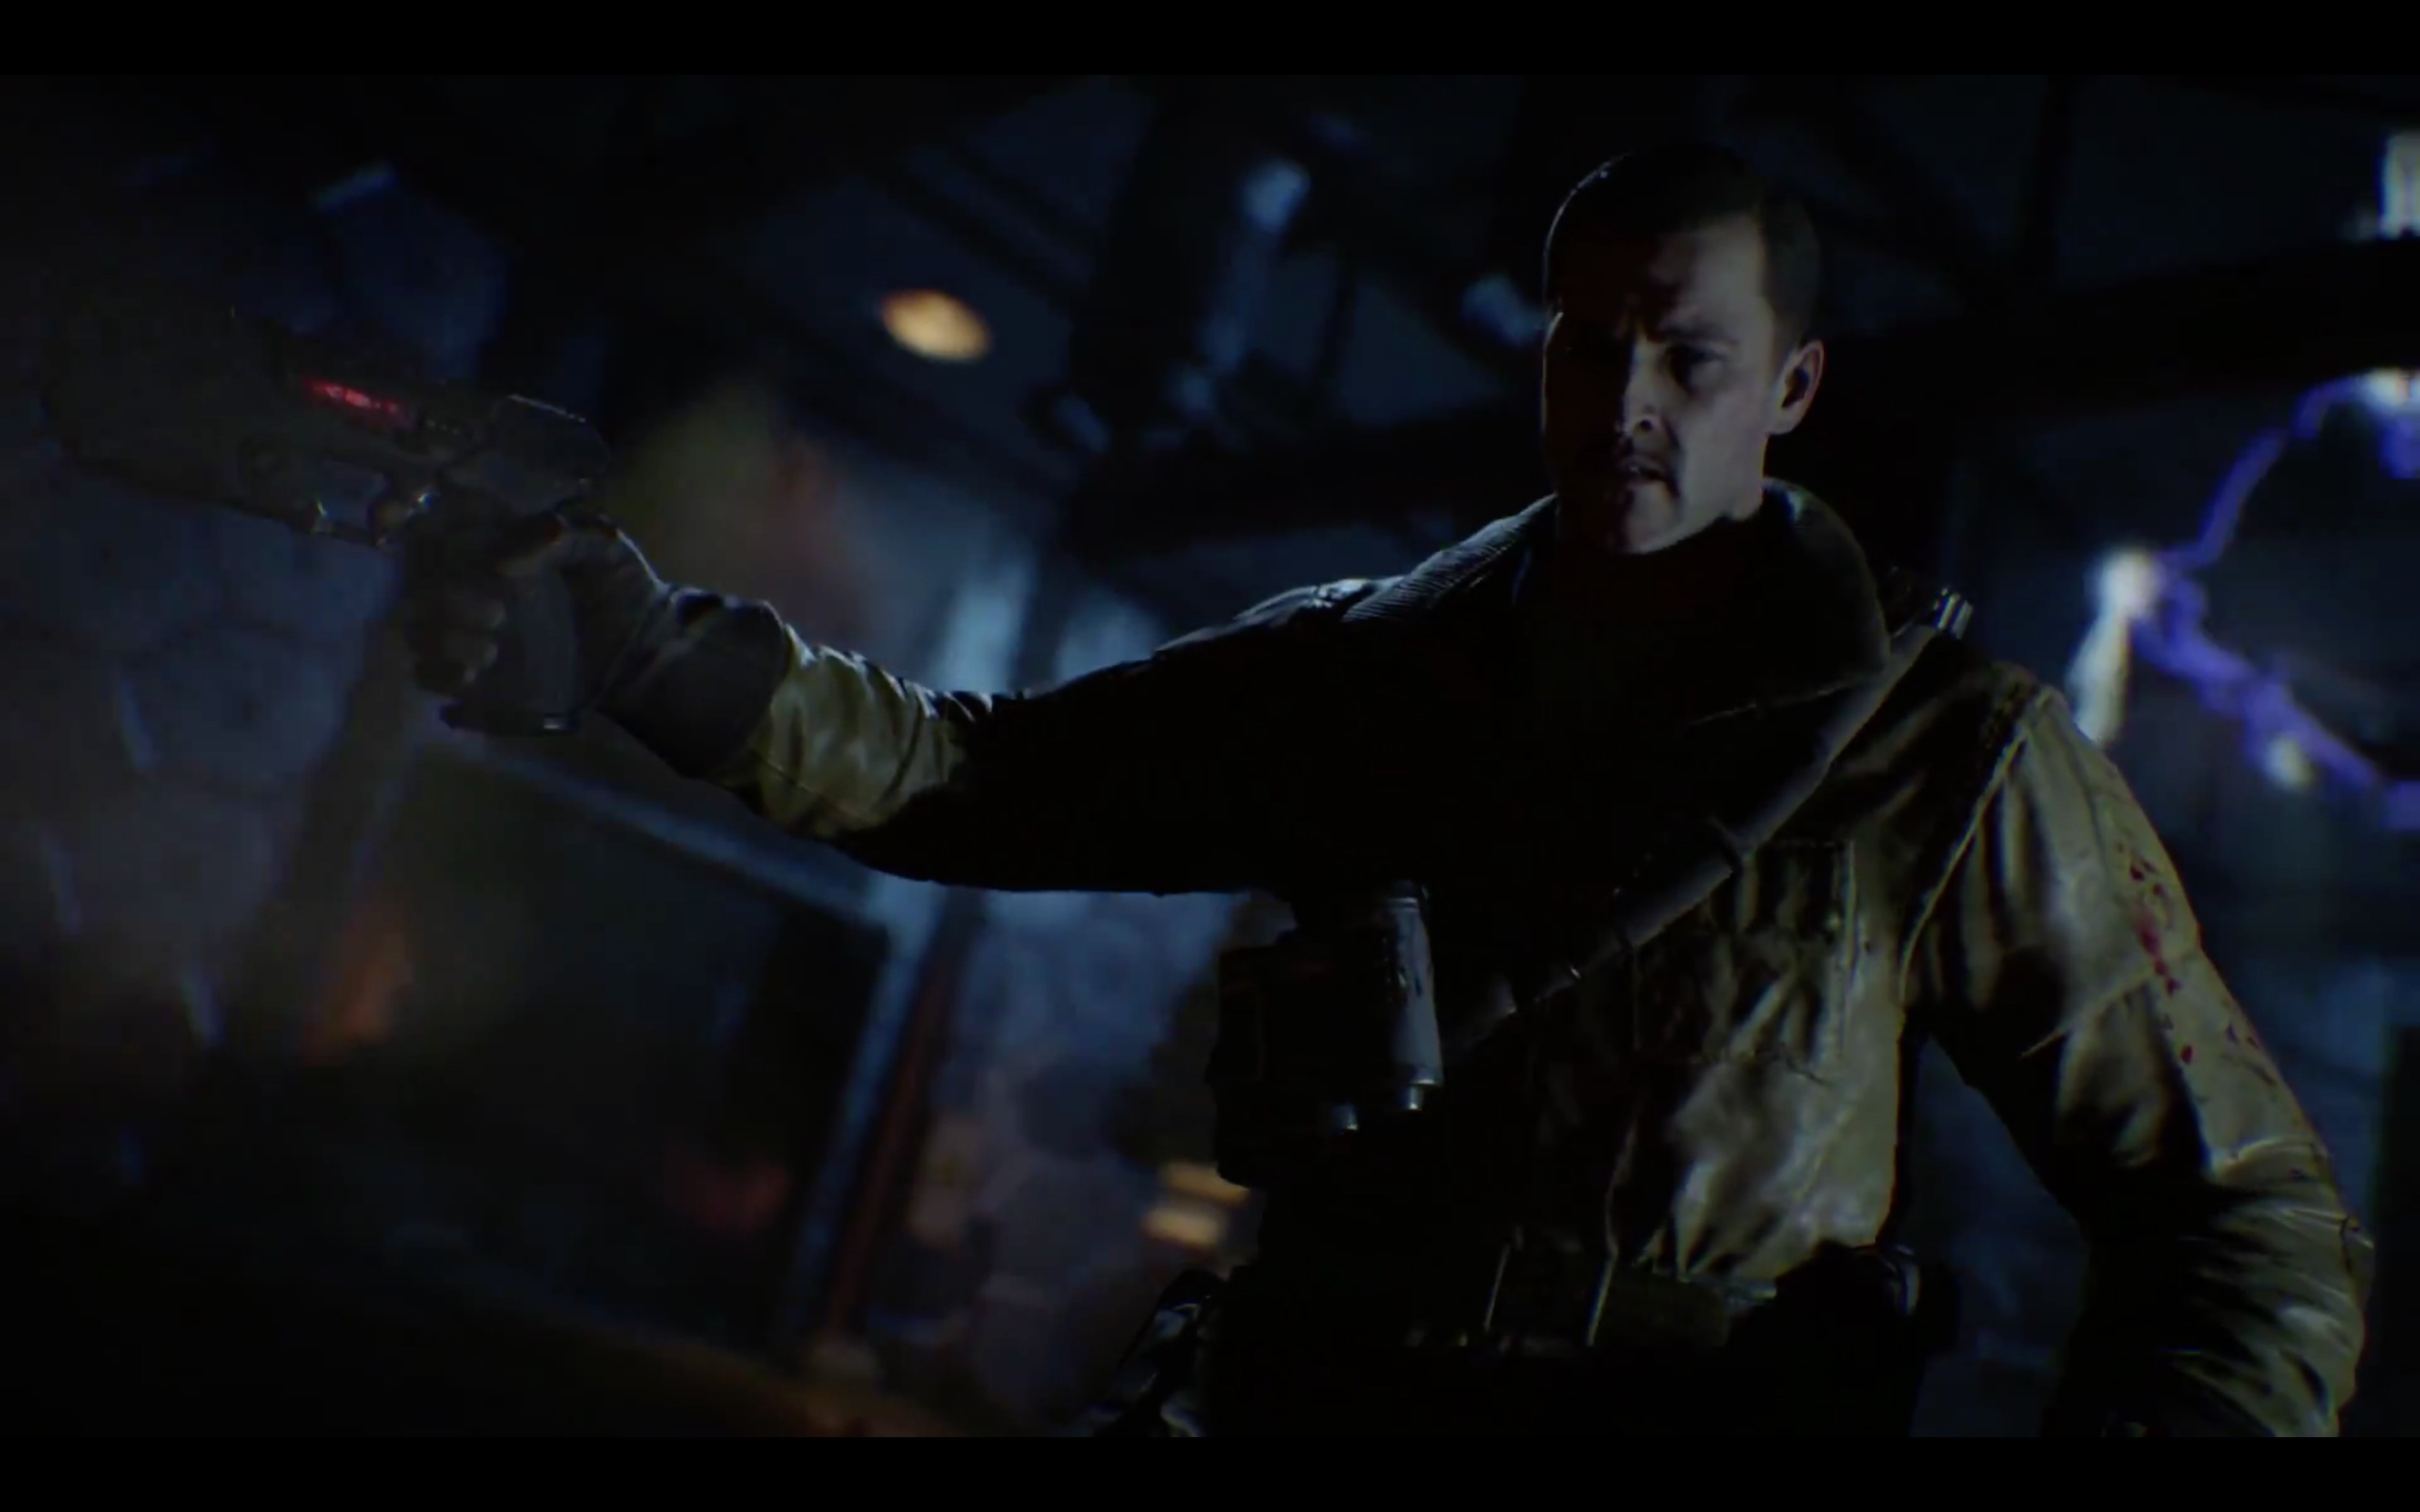 Call of Duty Black Ops III: The Giant Zombies